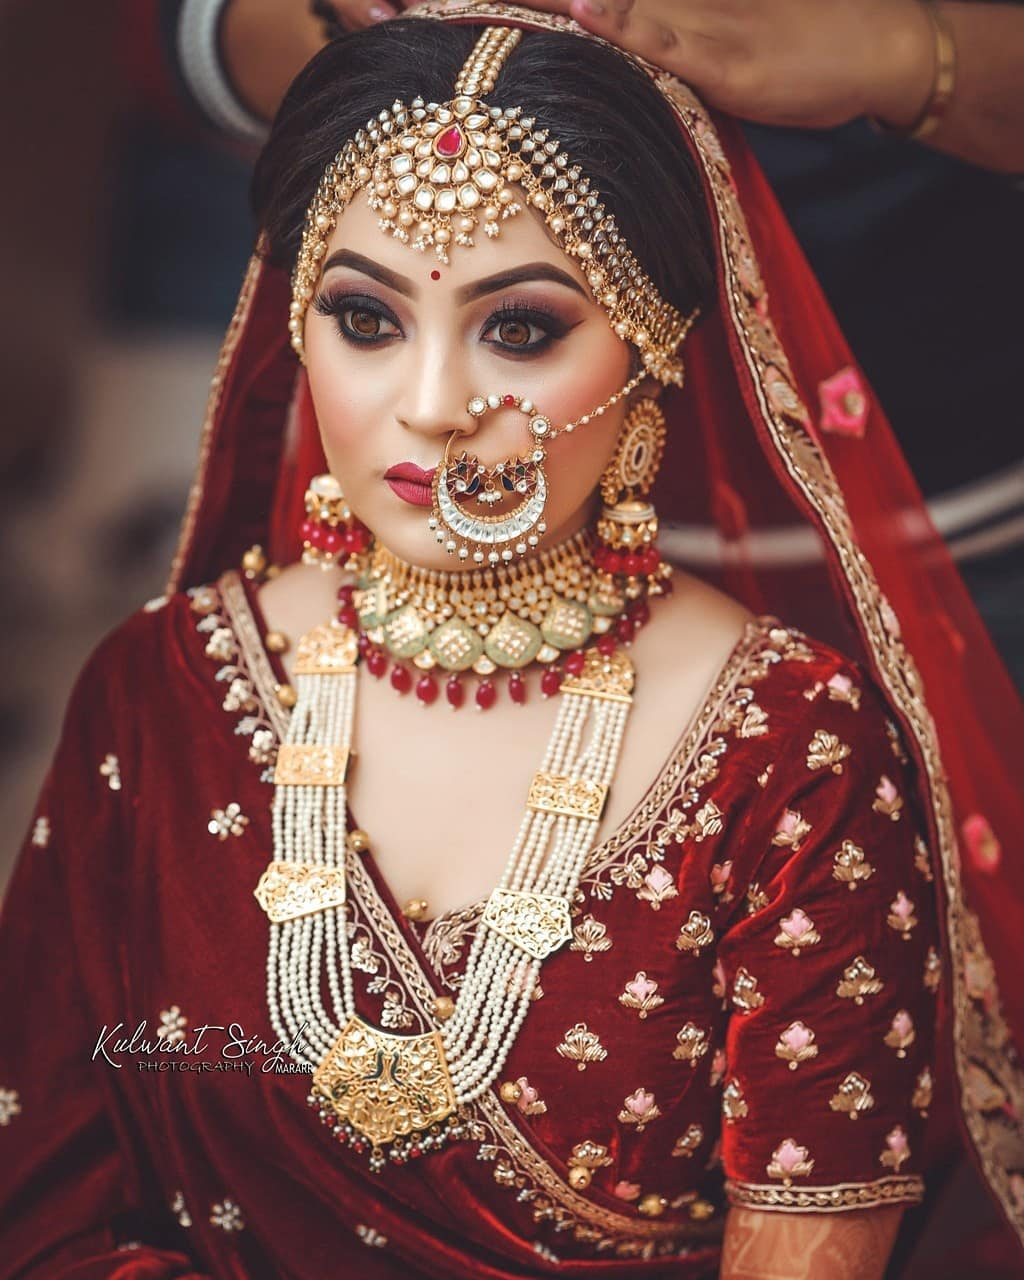 Sensuous in red: Indian Makeup and Jewelry Ideas Inspired from Real Brides